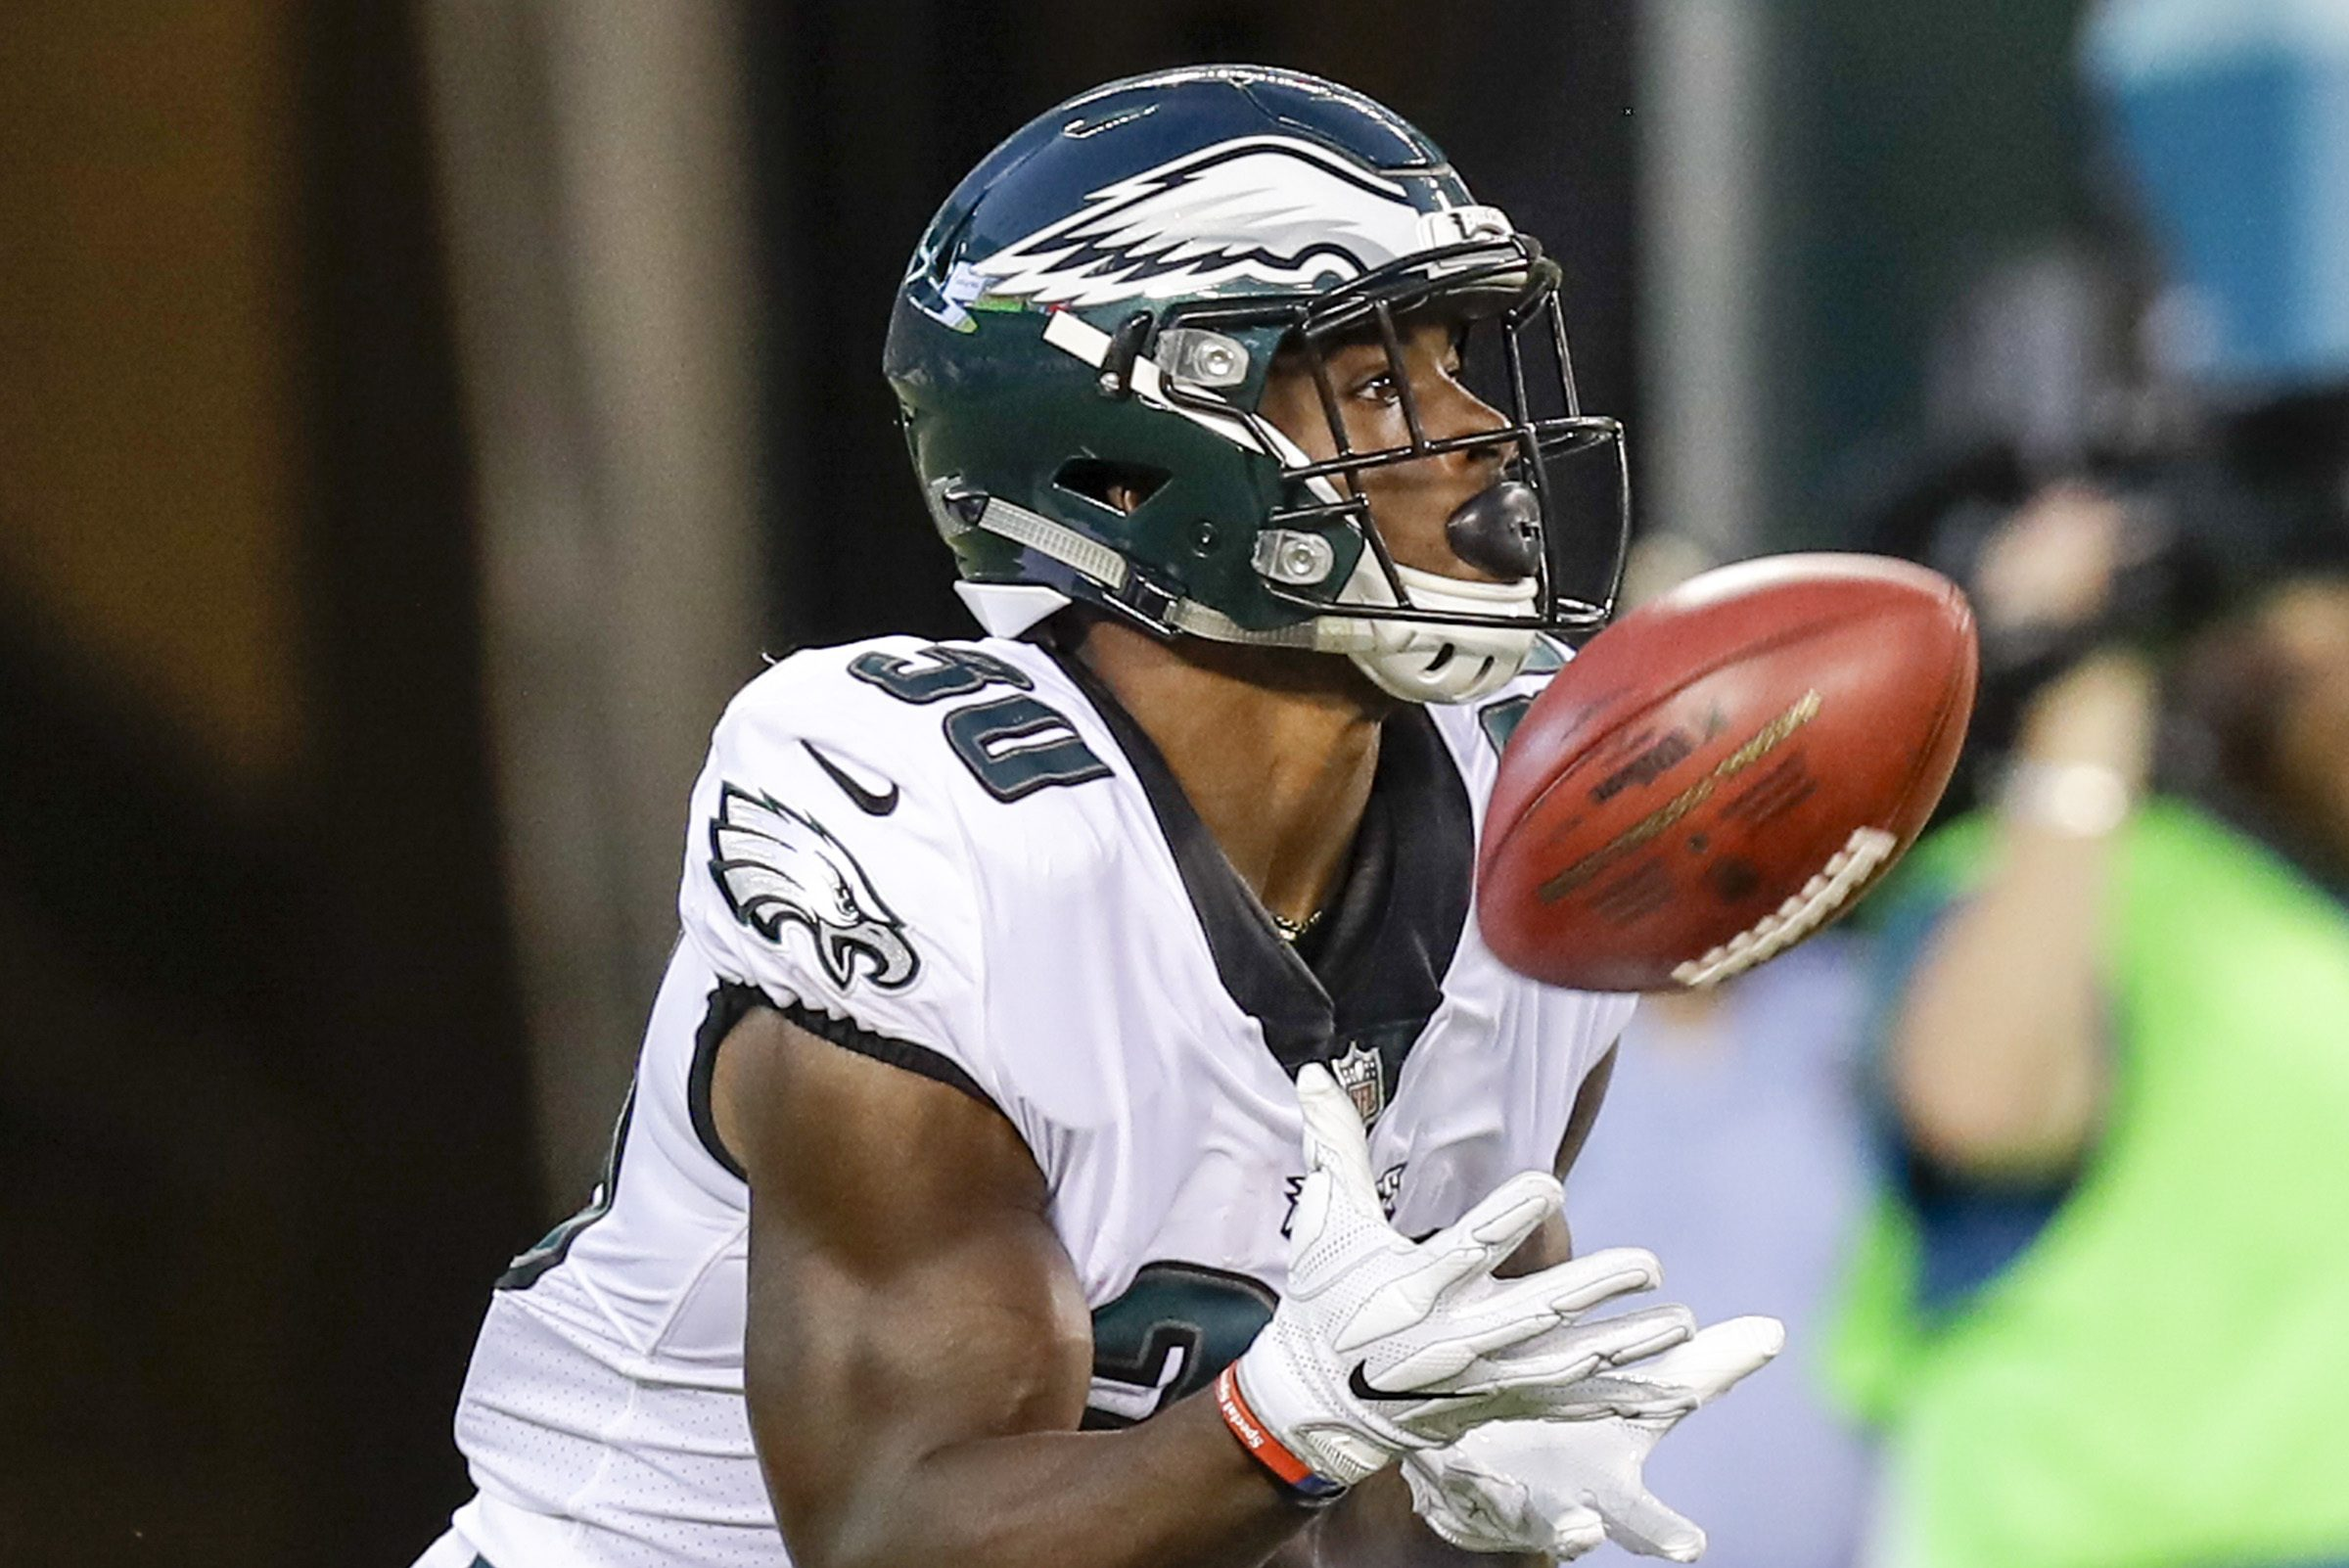 Eagles running back Corey Clement made the 53-man roster. Now time will tell if he stays.